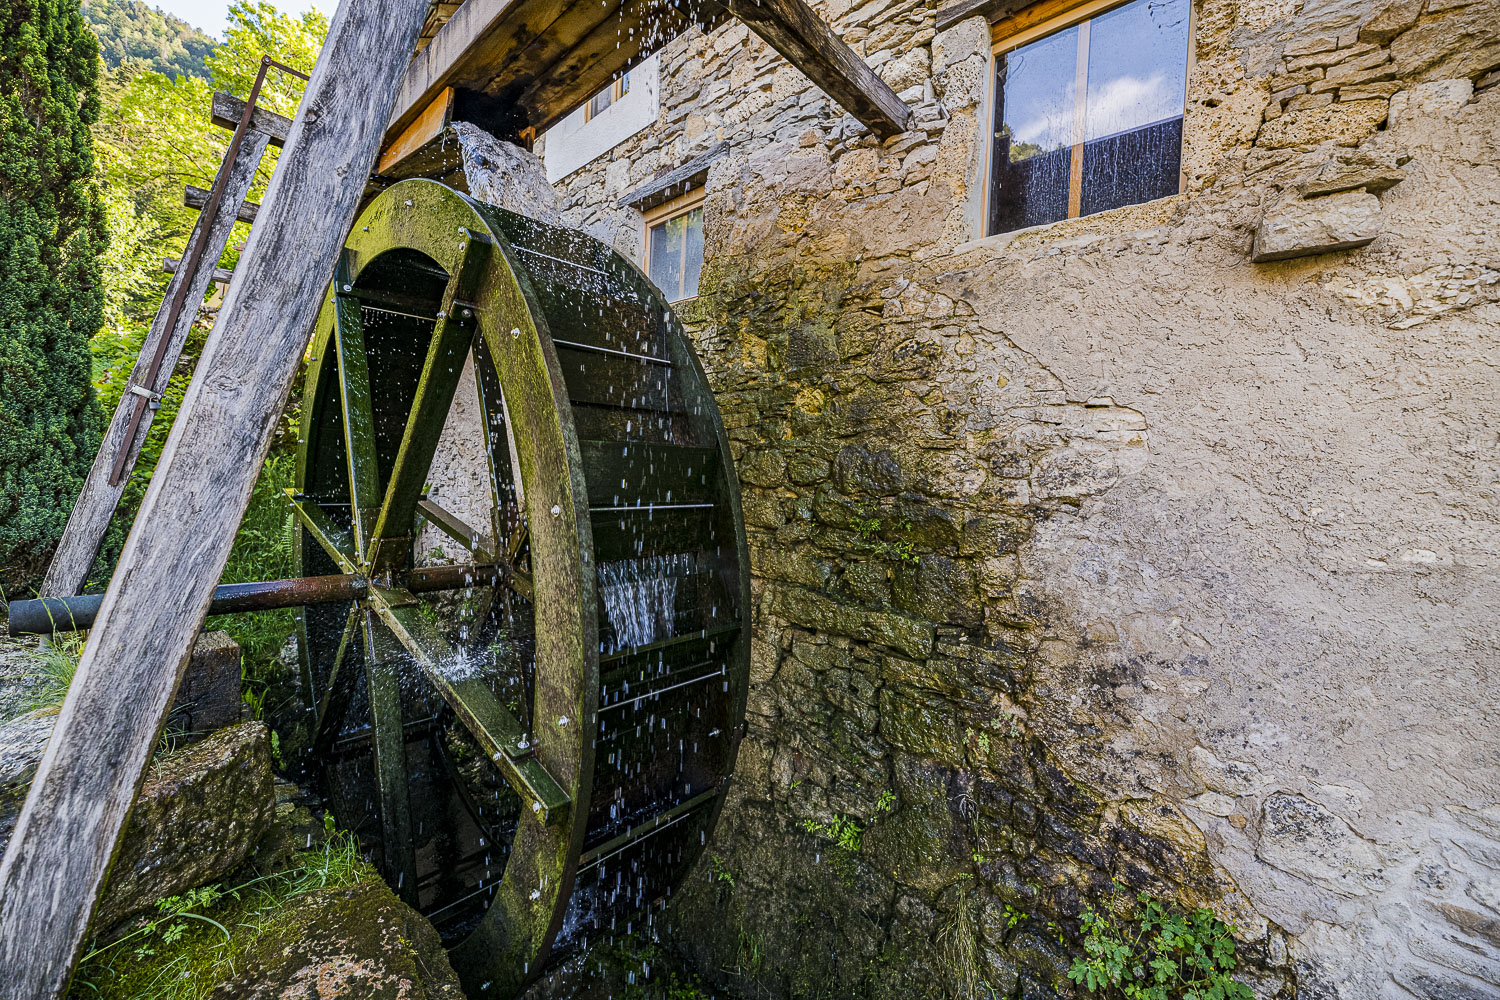 Moulin de Soubey – Soubey